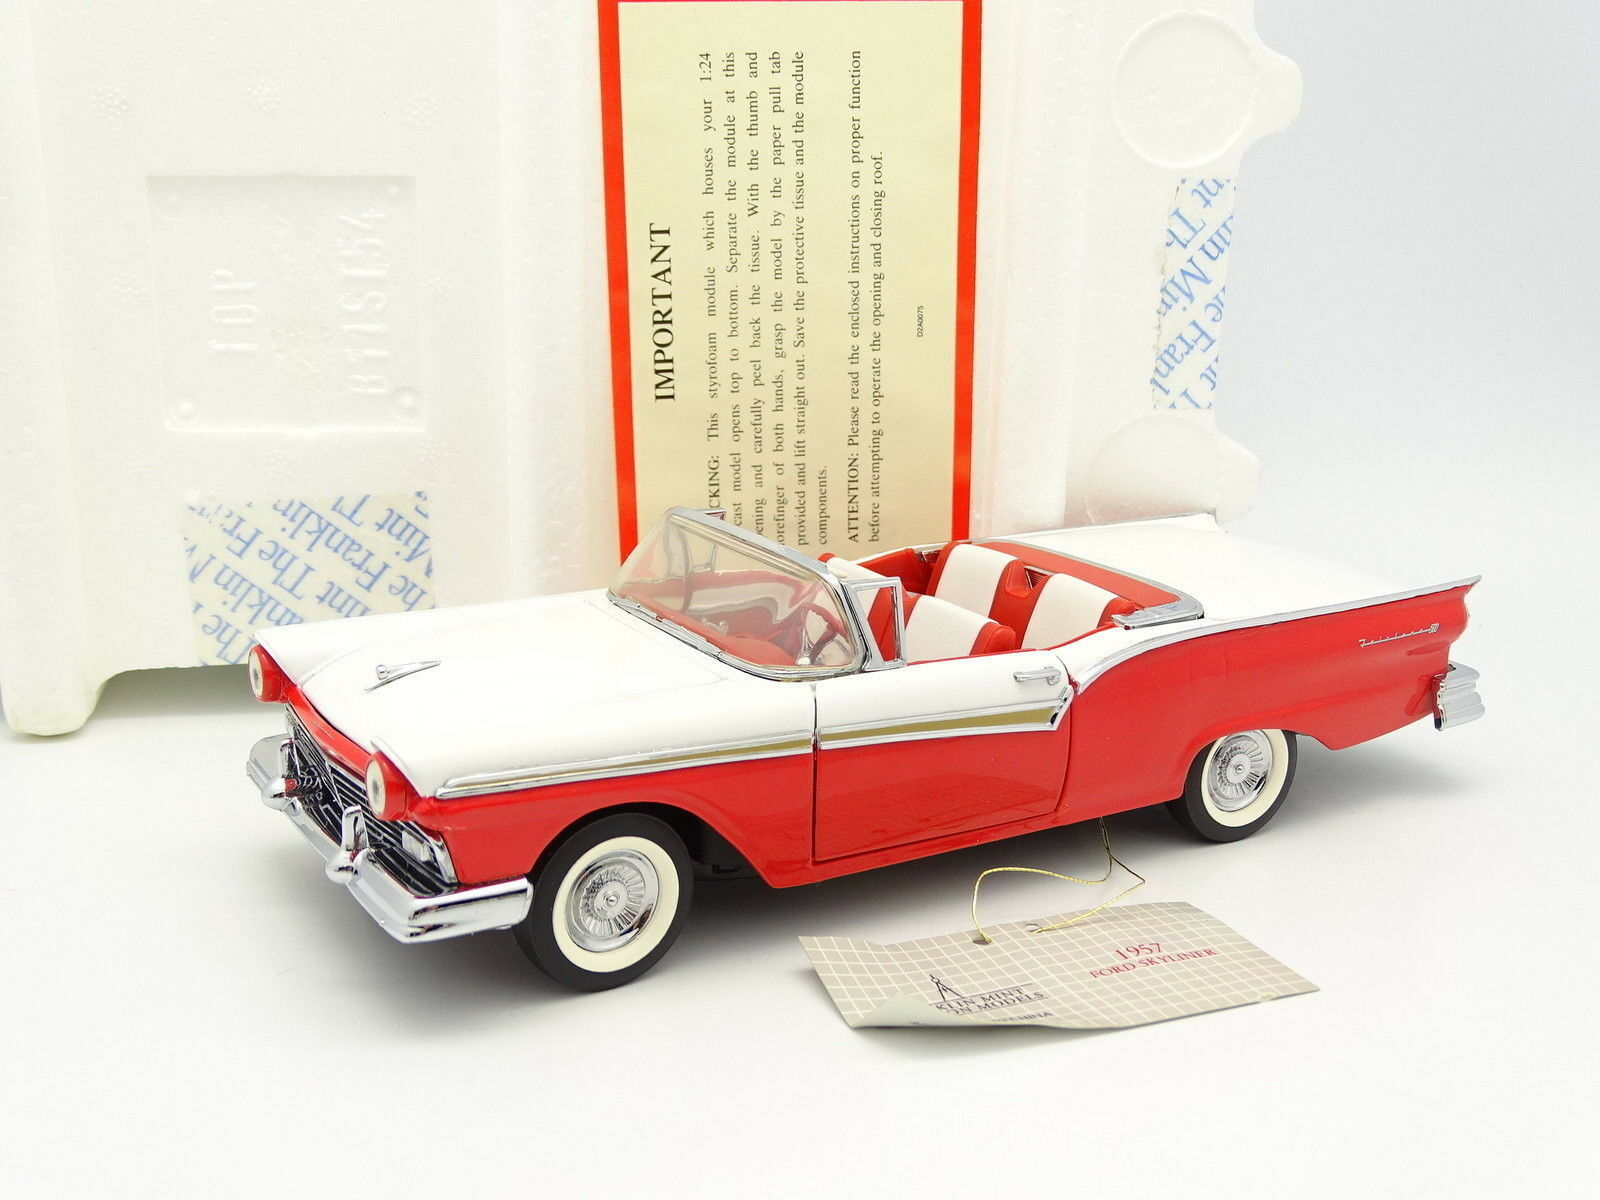 Franklin - mint - 1   24 - ford skyliner 1957 rot e bianco - tetto a scomparsa